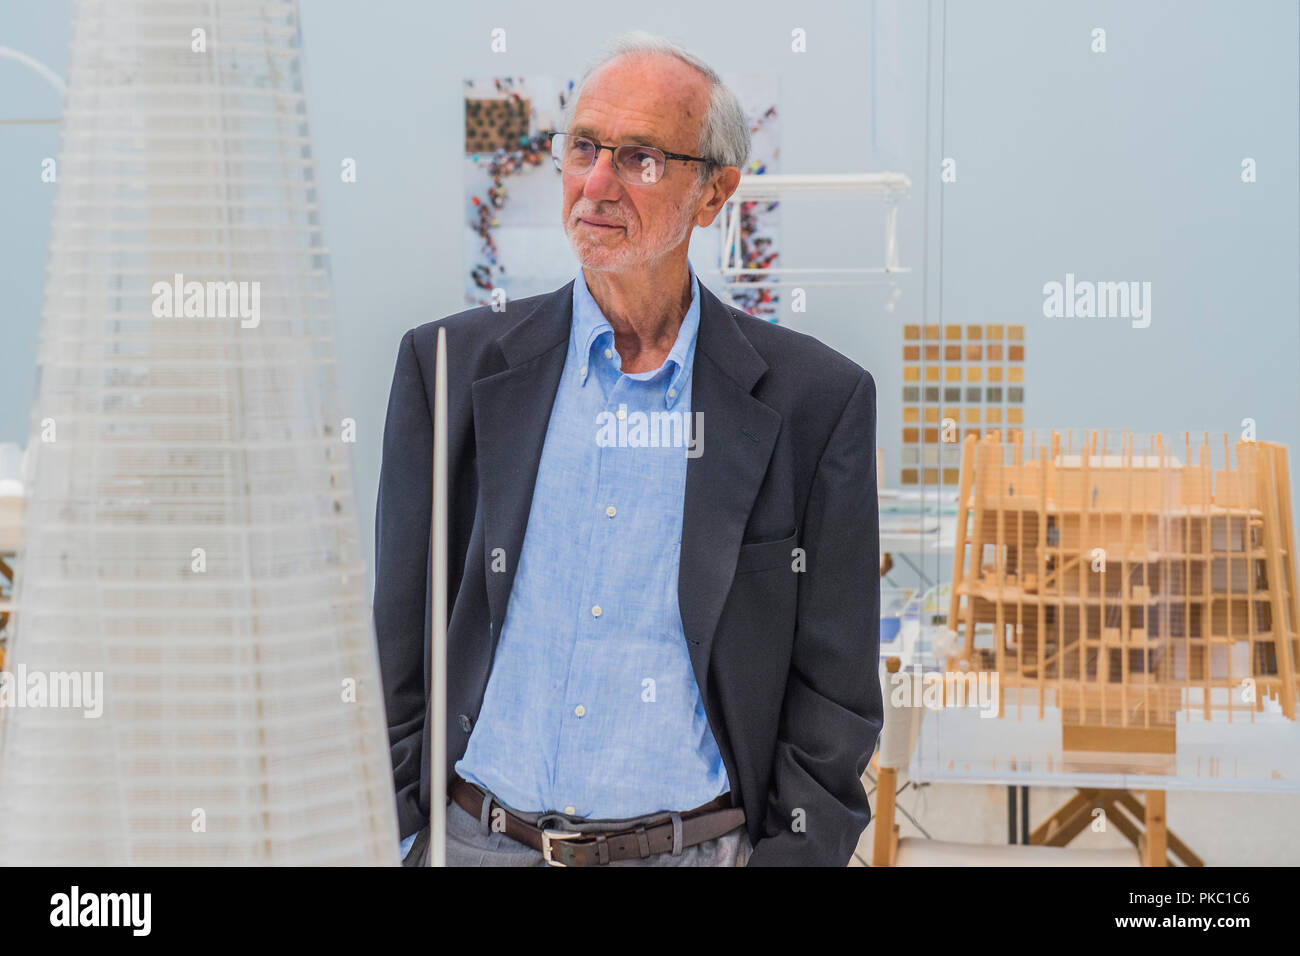 London, UK. 12th Sep, 2018. Renzo Piano with models for the Shard - Renzo Piano: The Art of Making Buildings in the Gabrielle Jungels-Winkler Galleries of the Royal Academy of Arts. Piano is an architect and Honorary Royal Academicianand this is the first comprehensive survey of hiss career to be held in London since 1989 - forming part of the 250th anniversary of the Royal Academy. Credit: Guy Bell/Alamy Live News - Stock Image